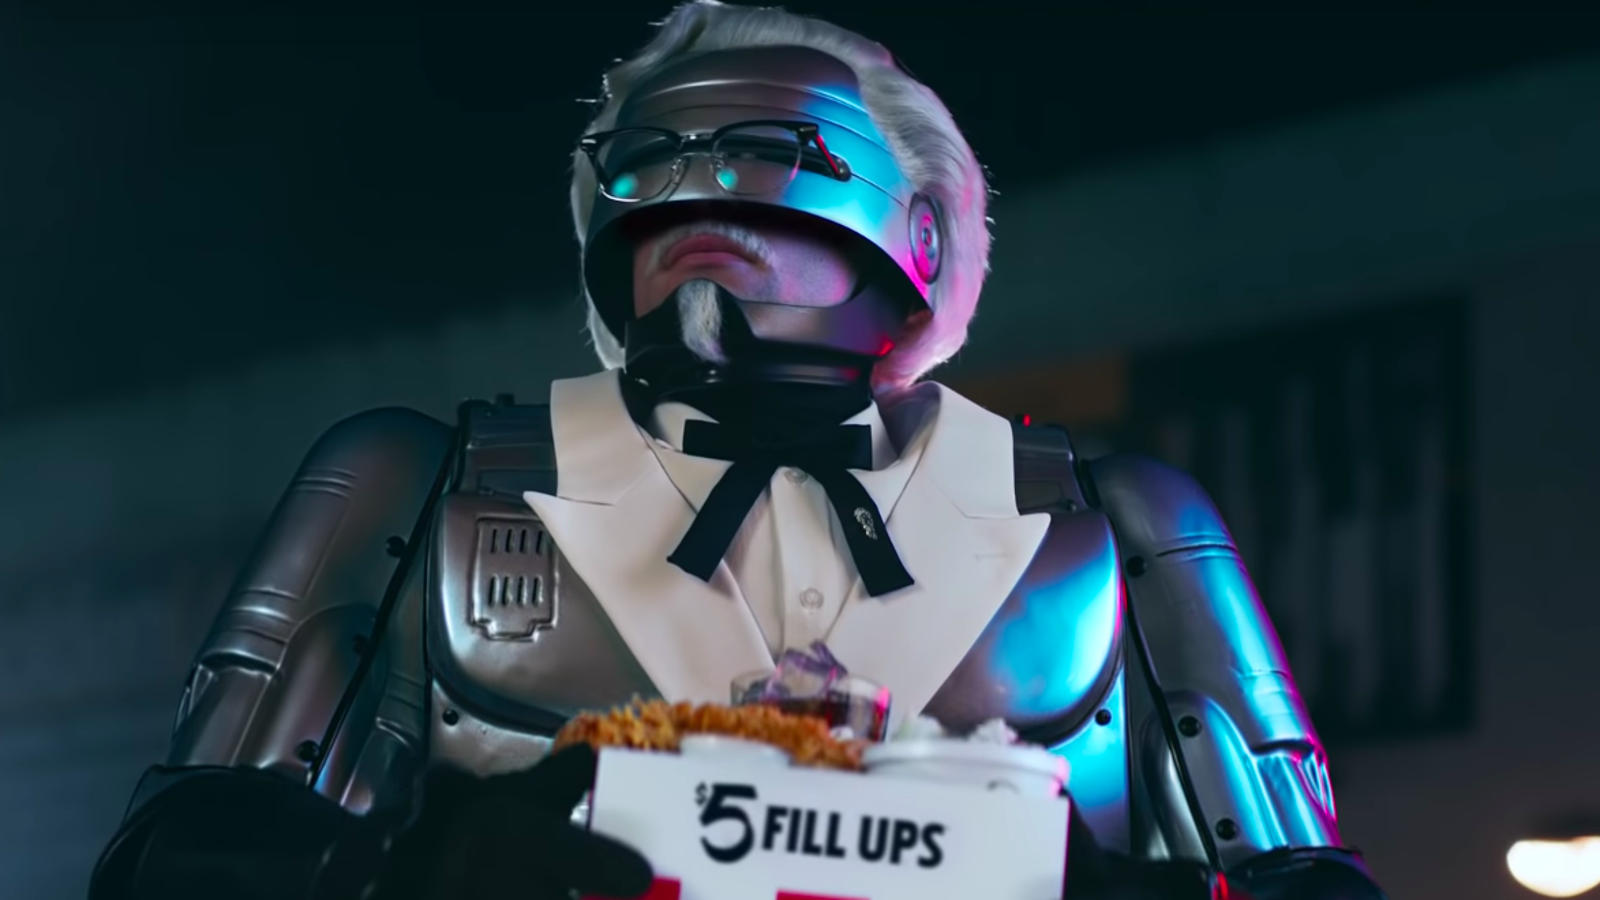 Attention, citizens: RoboCop is KFC's new Colonel